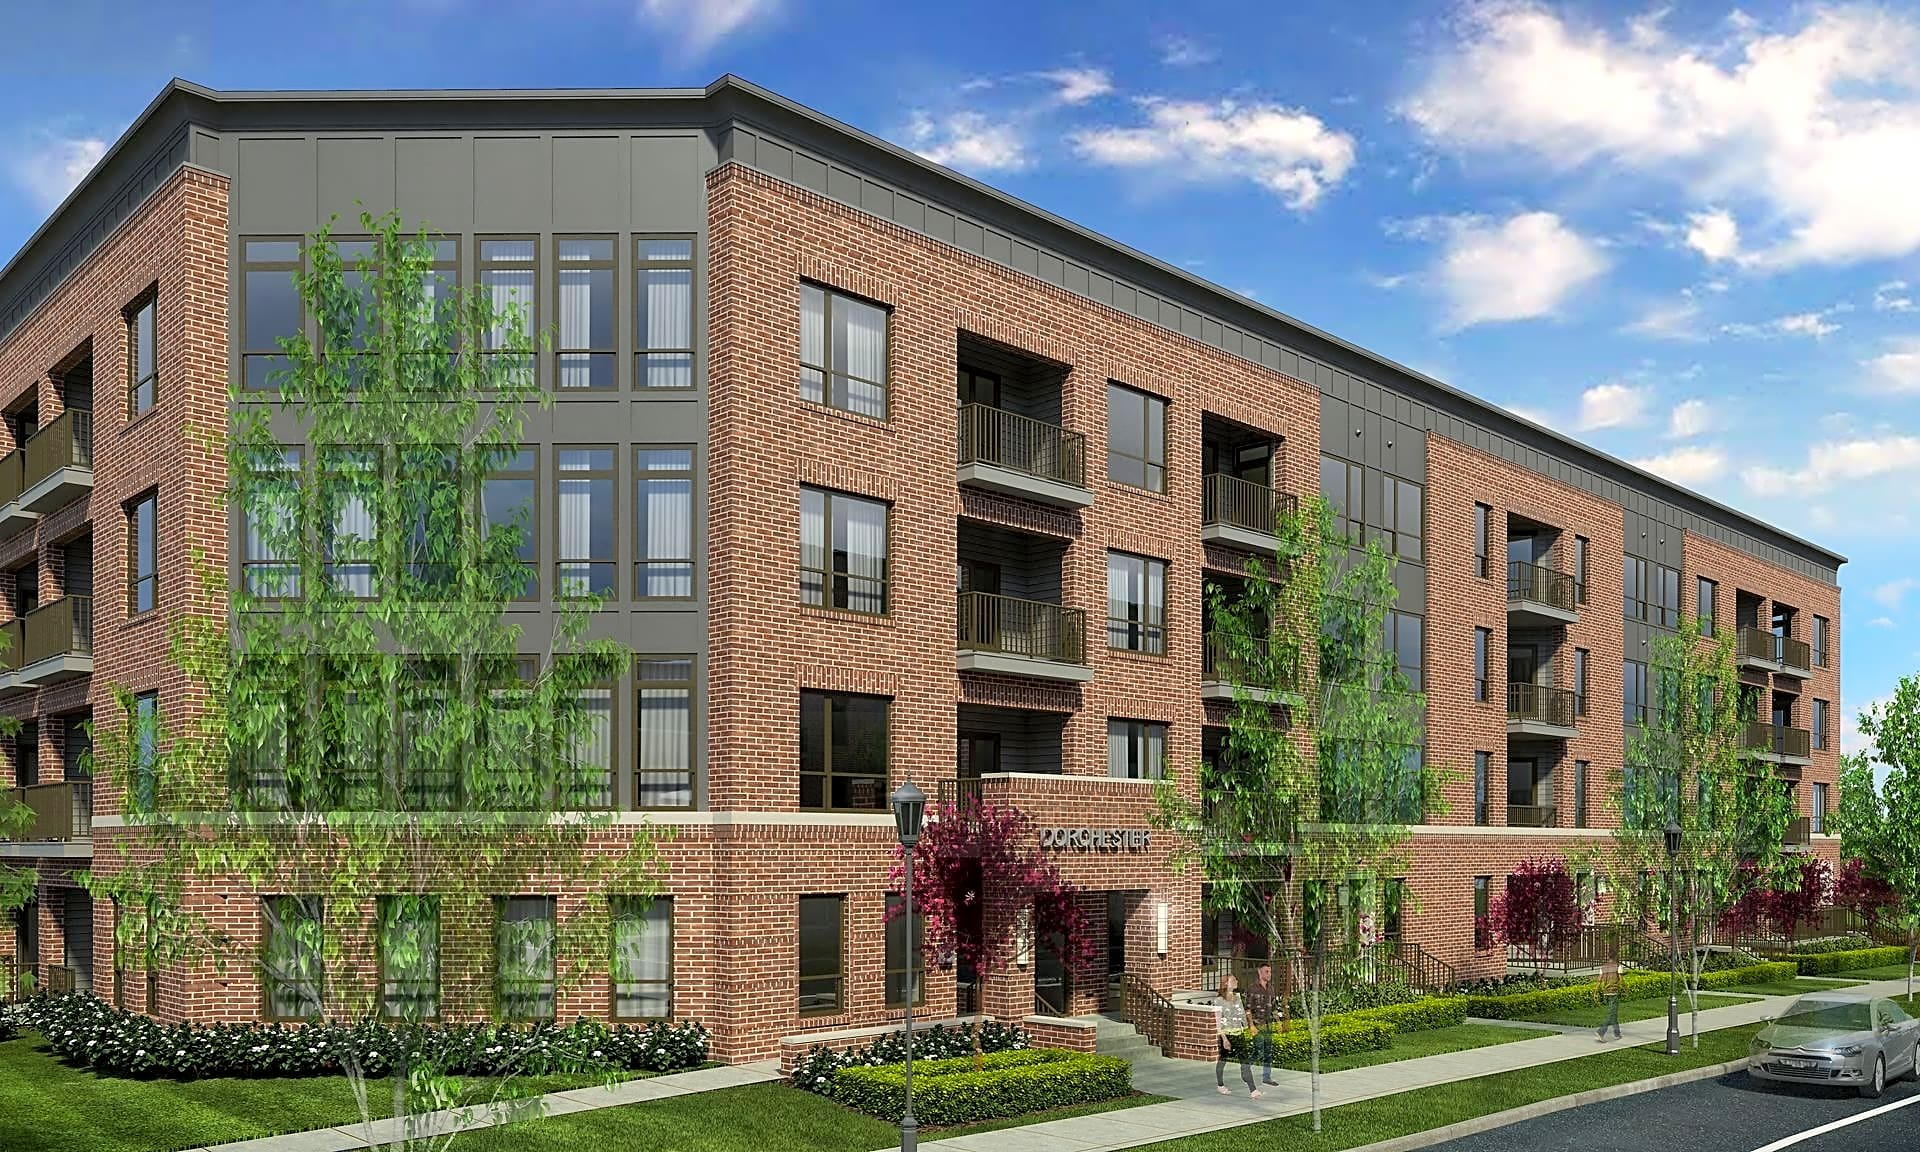 Apartments at the Yard: Dorchester West